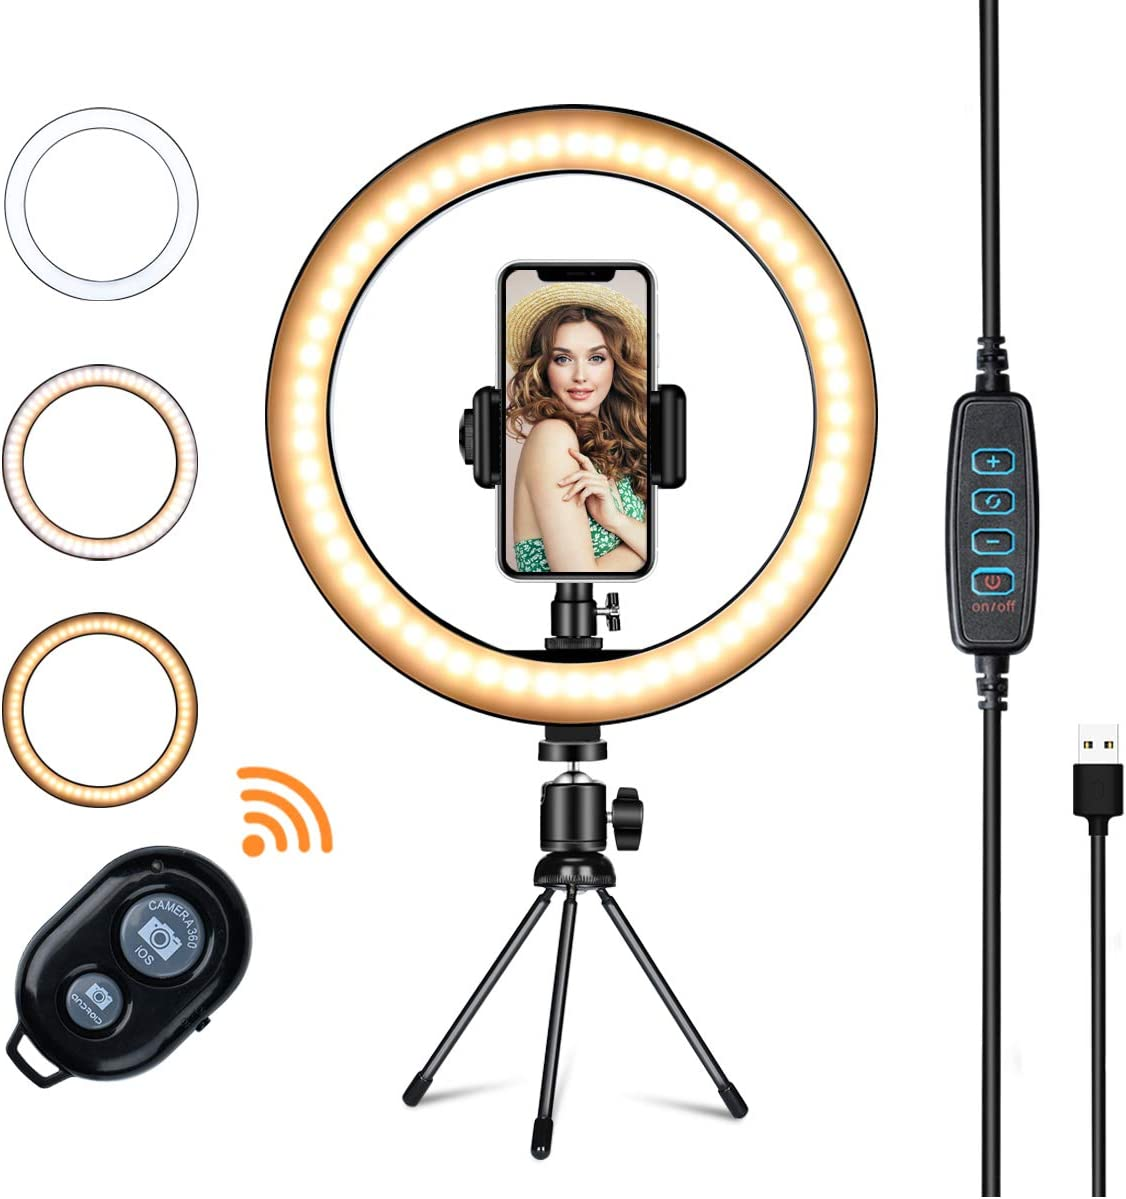 LED Ring Light with Tripod Stand,VillSure 10